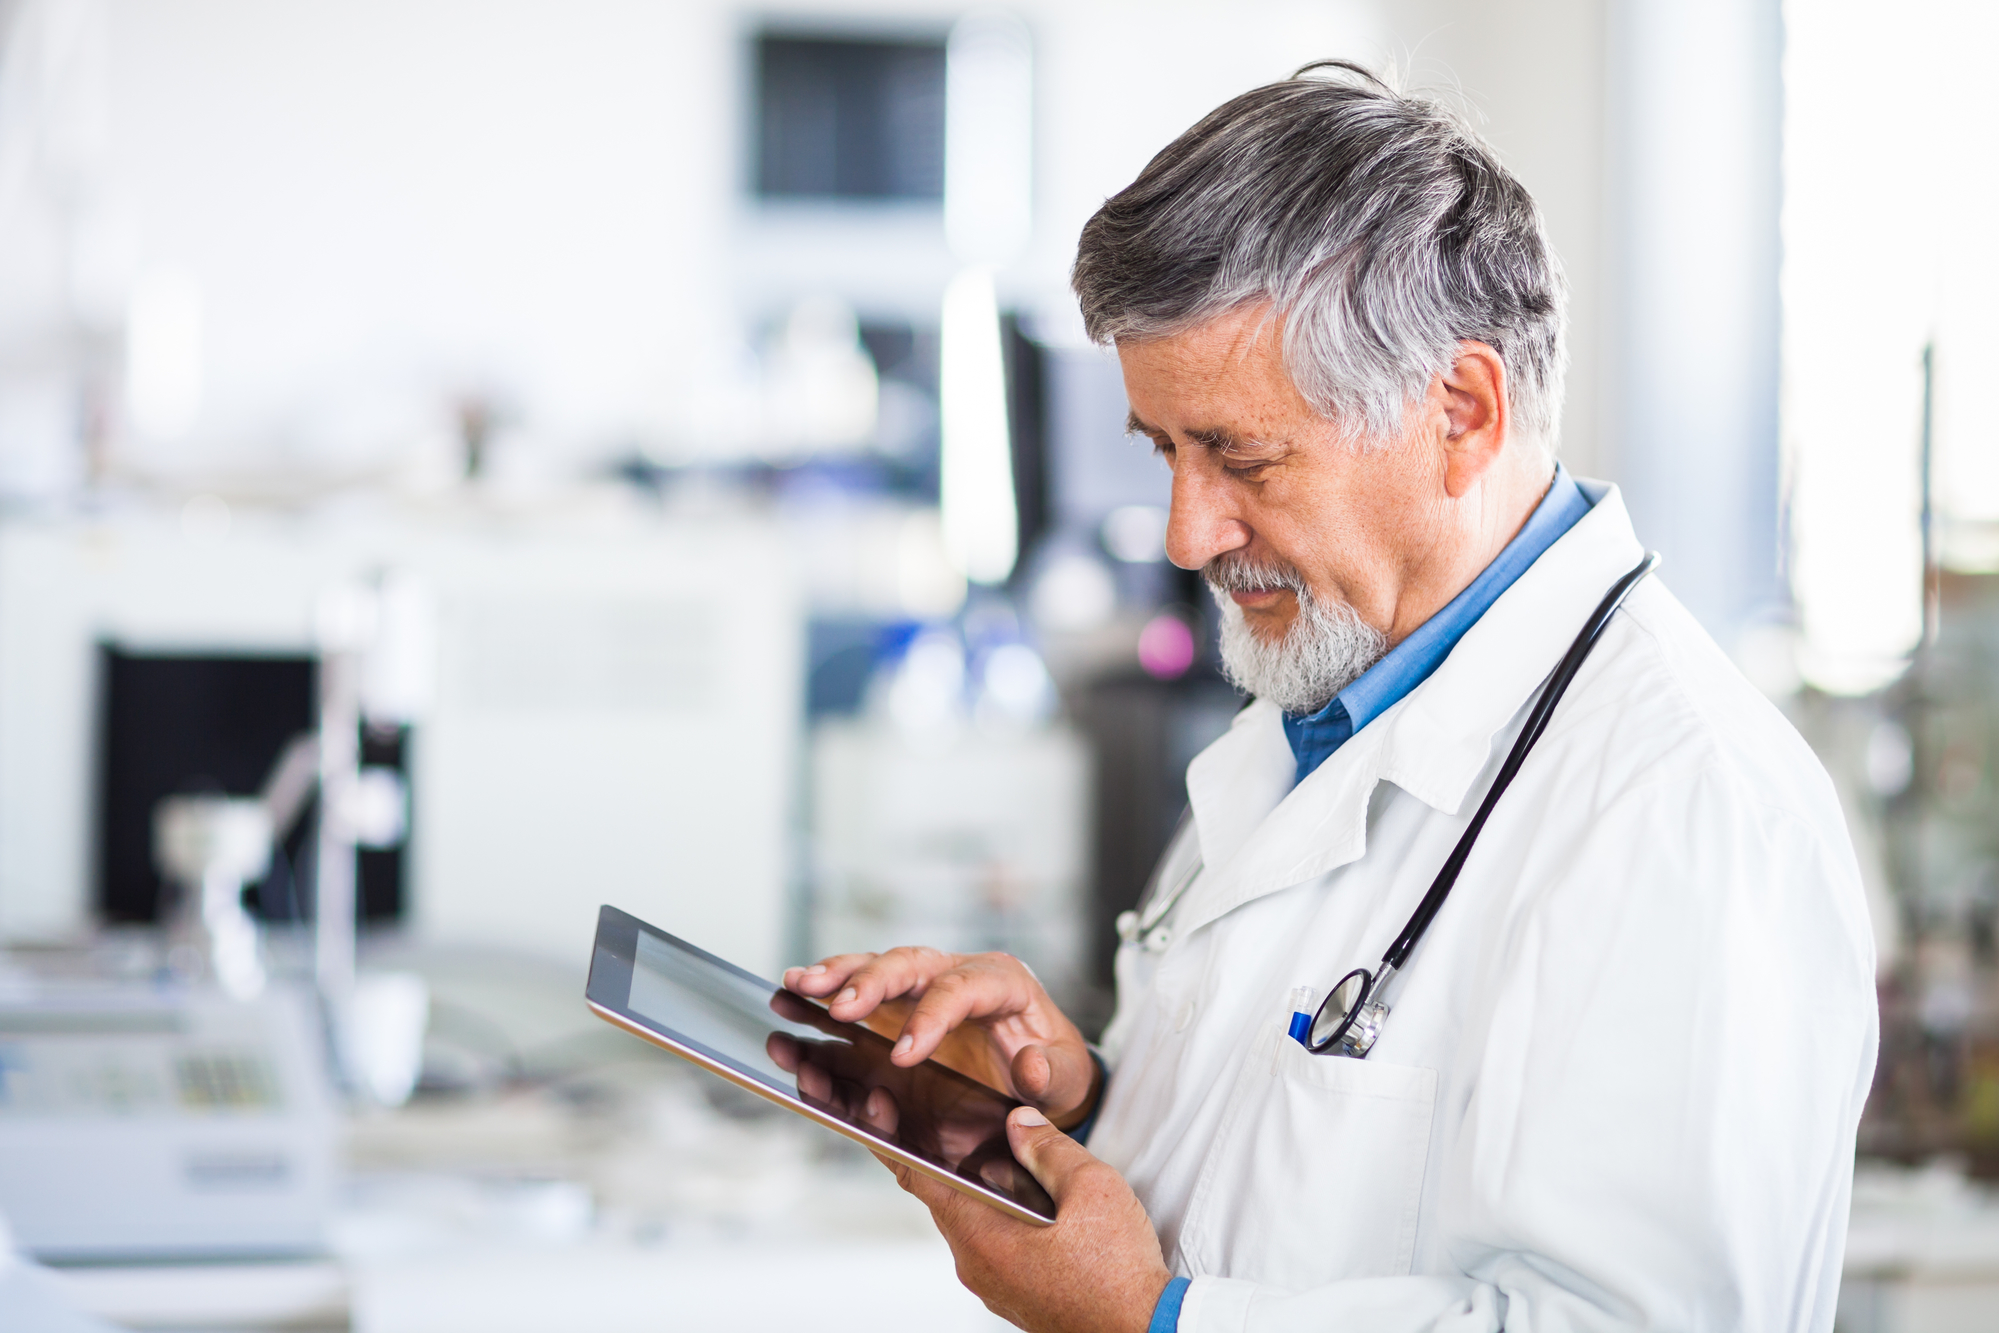 Mobile-first technology – bringing healthcare into the digital age